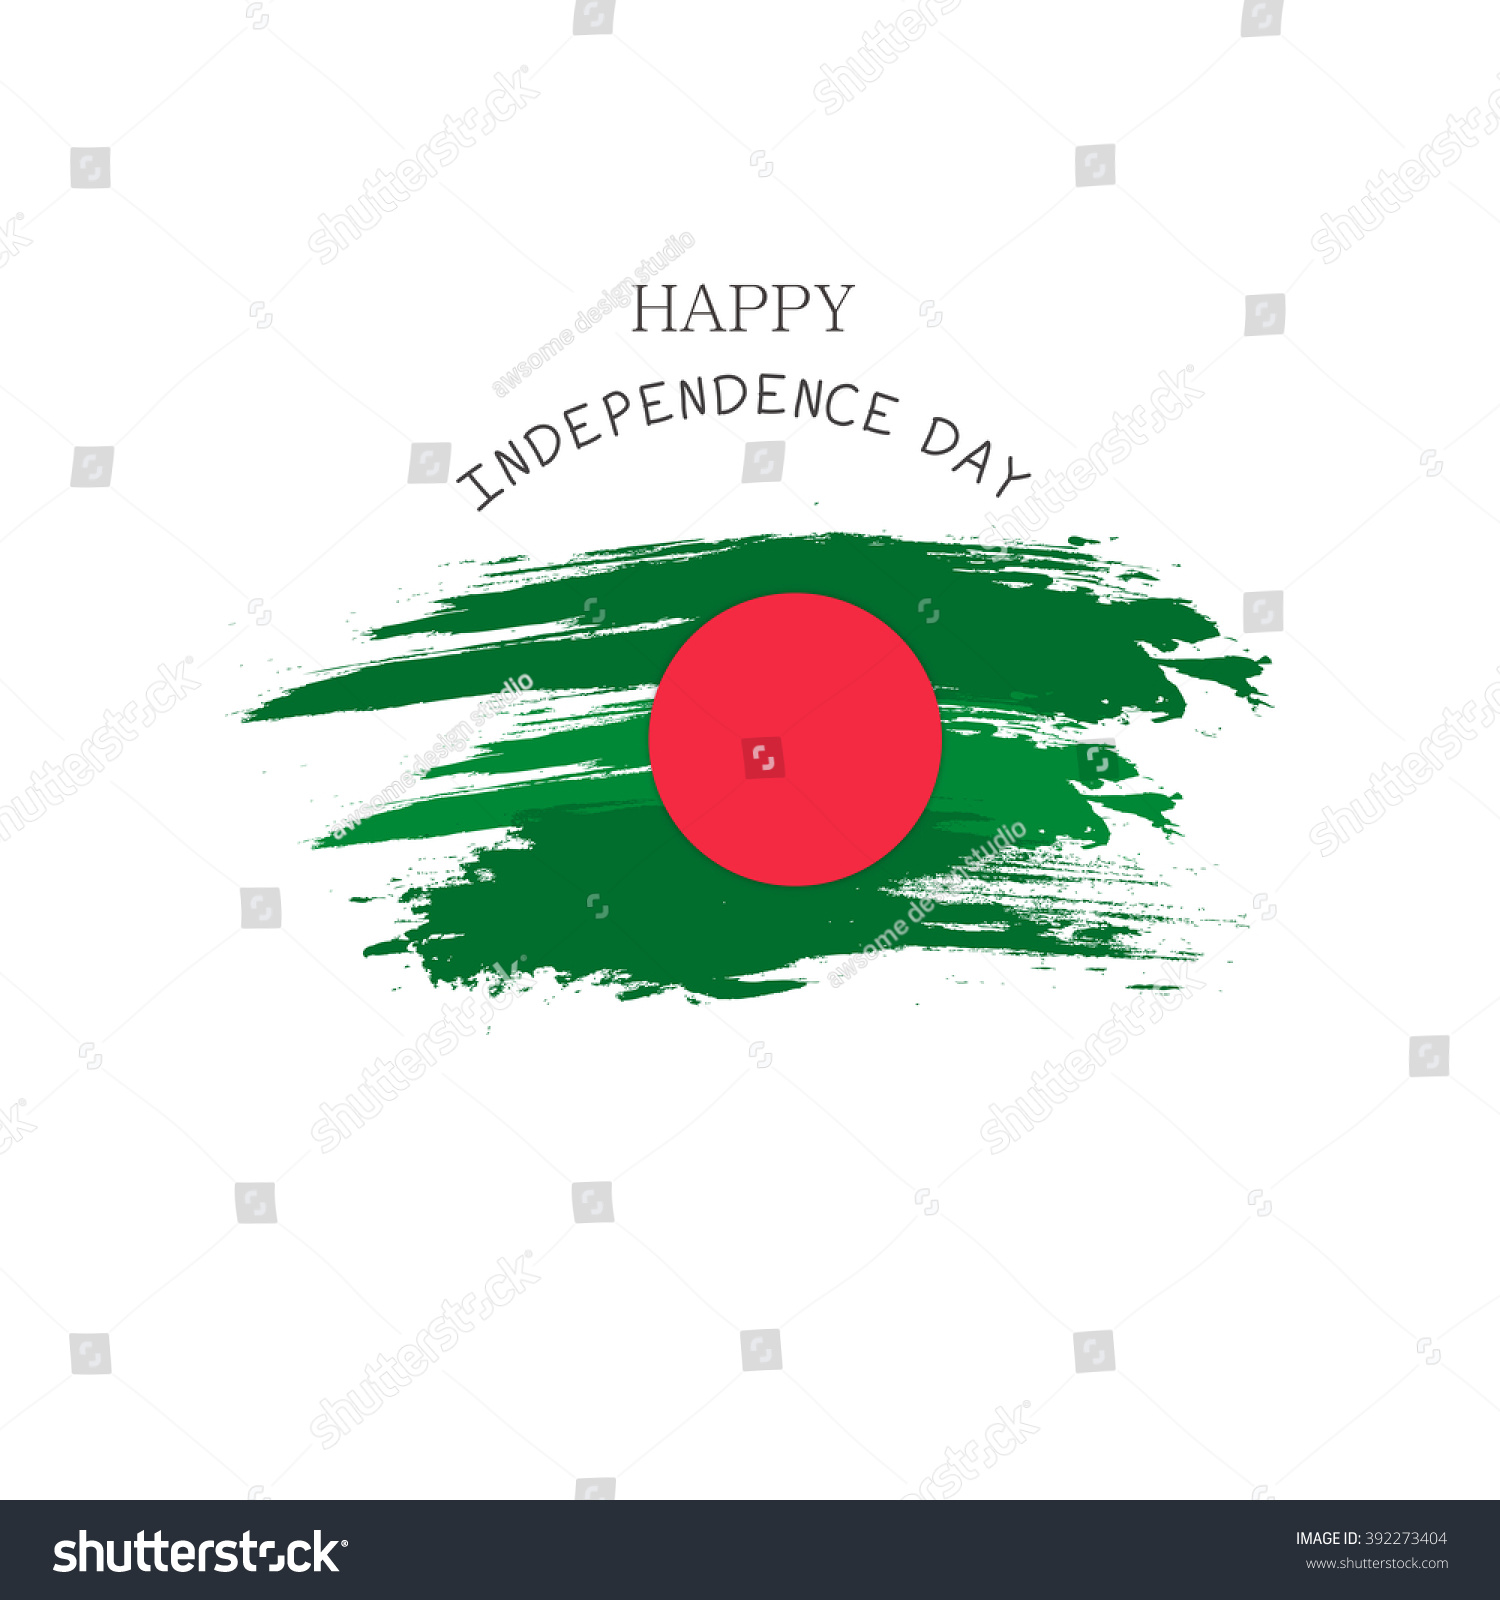 essay on independence day of bangladesh Bangladesh's capital dhaka is a noisy, exciting city, full of energy and argument the massive chaos of its constantly stationary traffic is often riven by protests, strikes, marches these can be on any number of grievances.